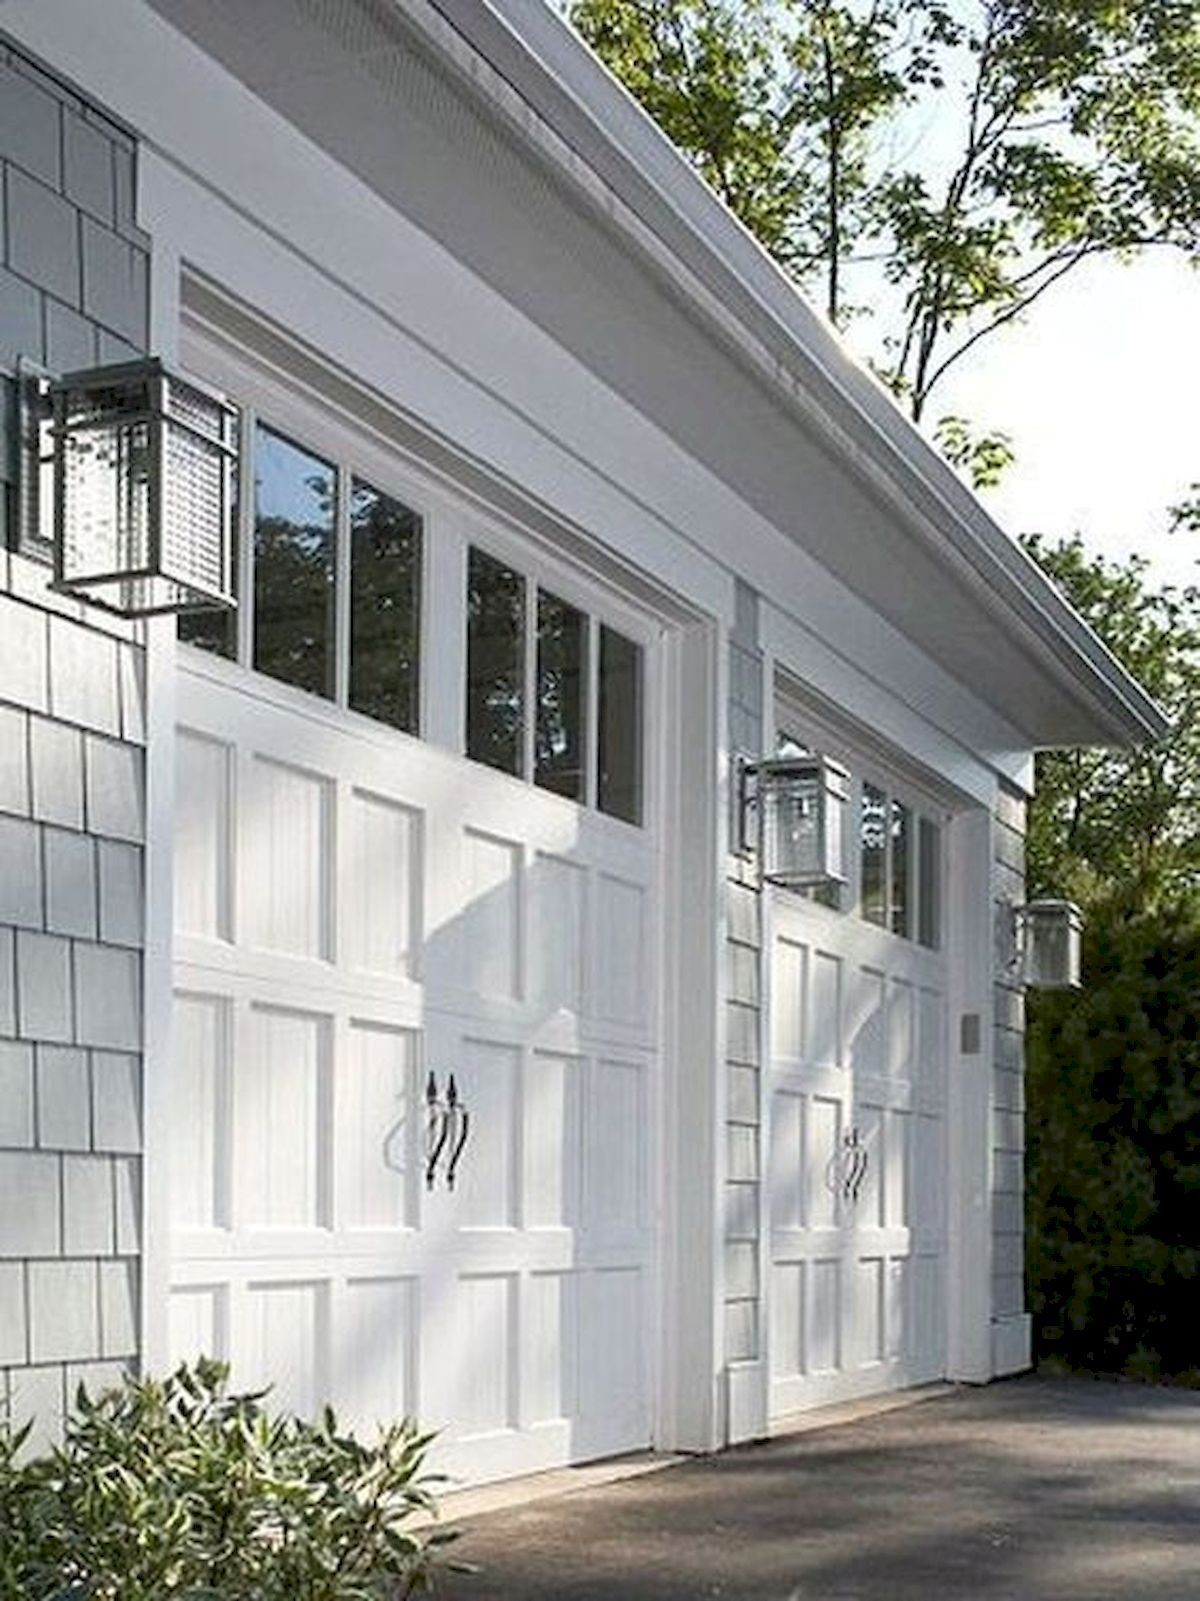 40 Garage Door Ideas Are The Right Choice For You Desain Arsitektur Arsitektur Modern Arsitektur